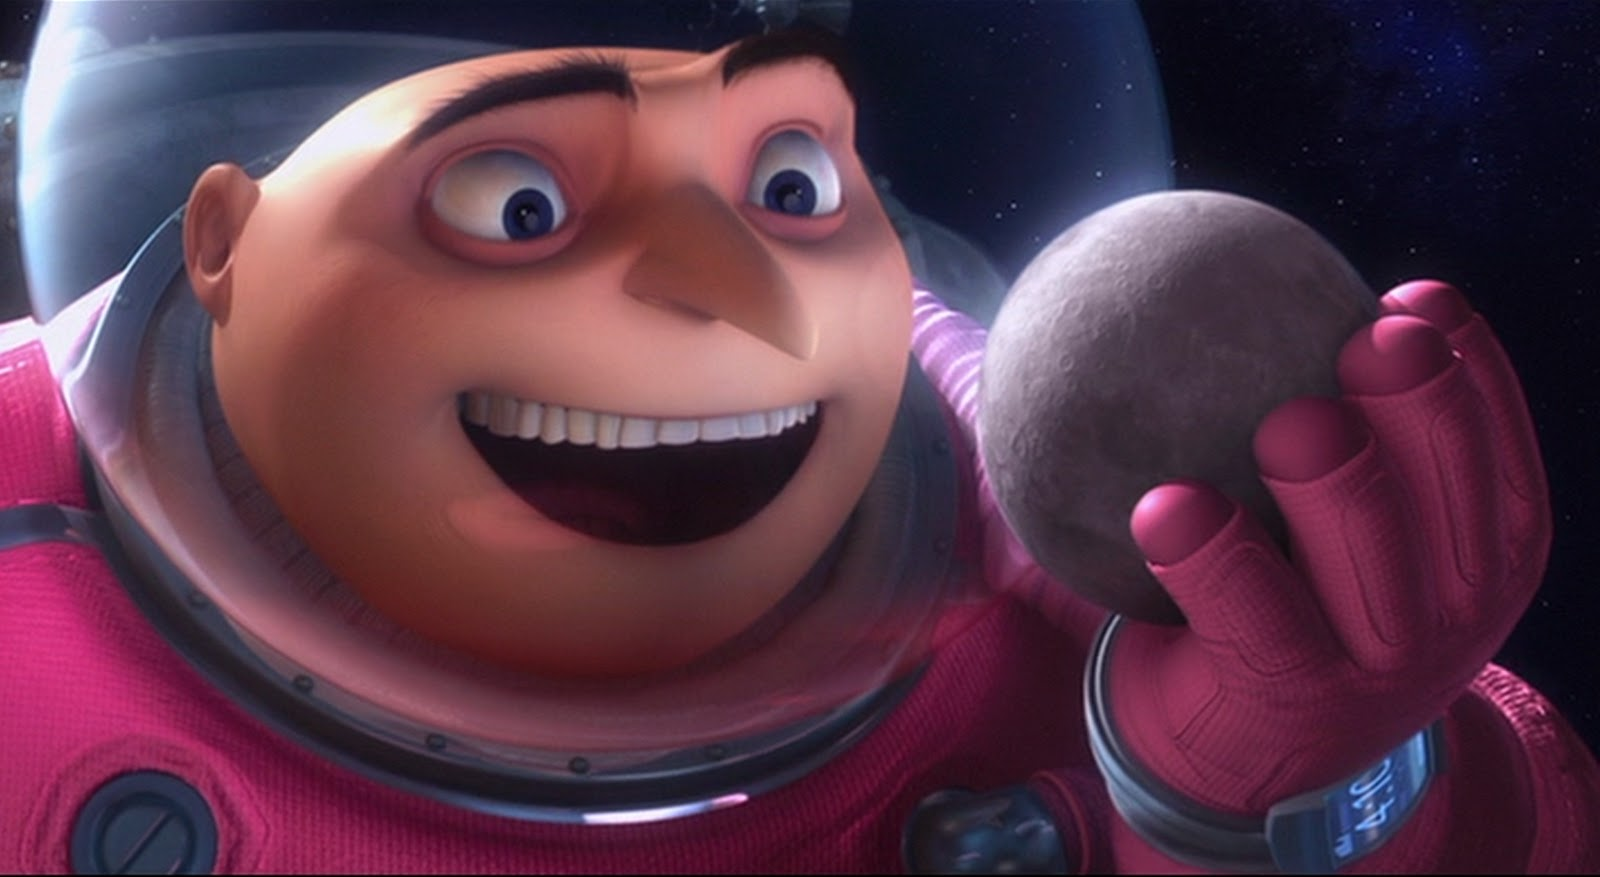 https://lh4.googleusercontent.com/-d4G-kdWVIU4/TXbKwZHgyiI/AAAAAAAAAcA/jS5rFT5WXPc/s1600/Despicable+Me+Gru+and+Tiny+Moon.jpg